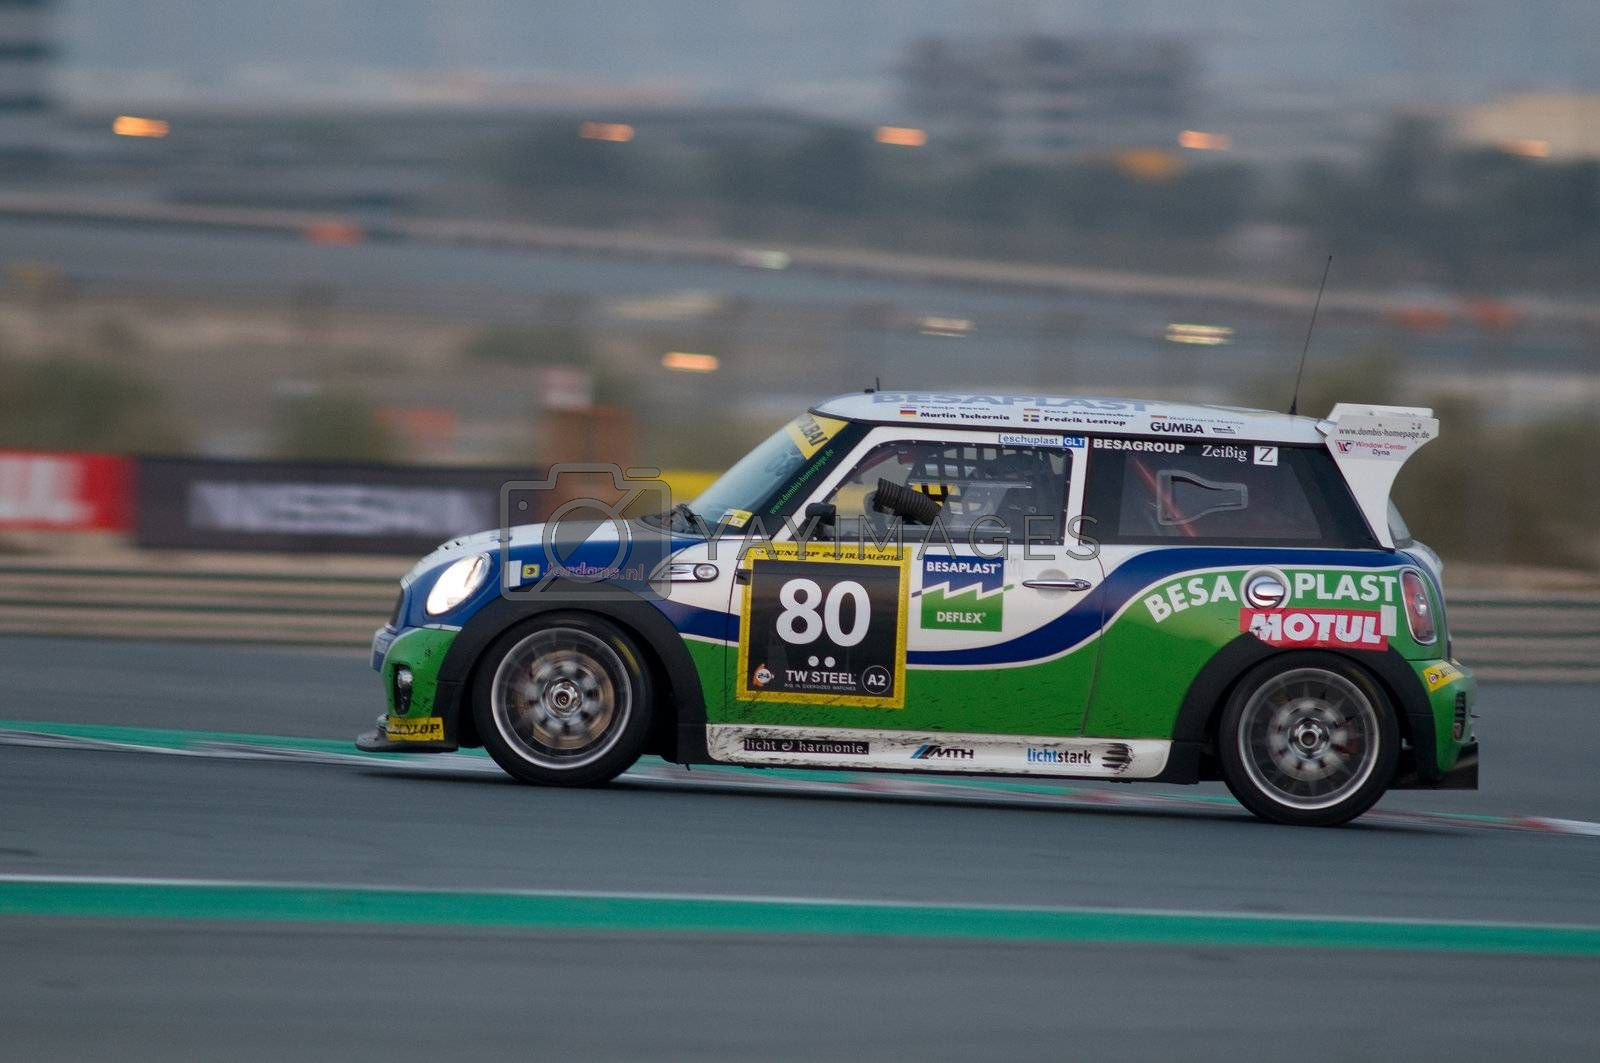 DUBAI - JANUARY 14: Car 180, a BMW Mini, during the morning hours of the 2012 Dunlop 24 Hour Race at Dubai Autodrome on January 14, 2012.